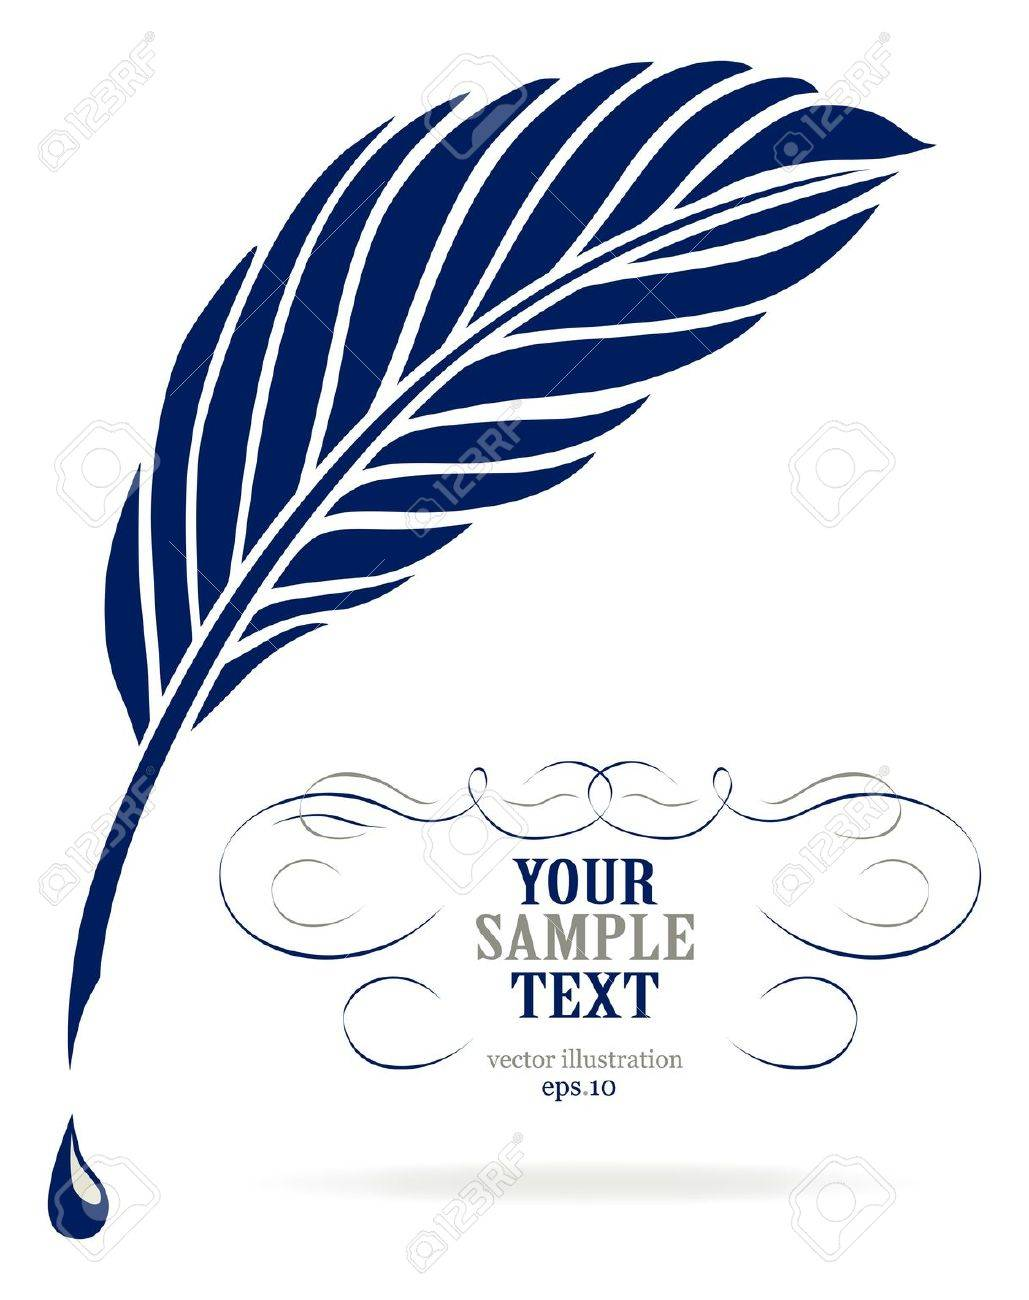 Free Ink Pens Ink Feather Pen Royalty Free Cliparts Vectors And Stock